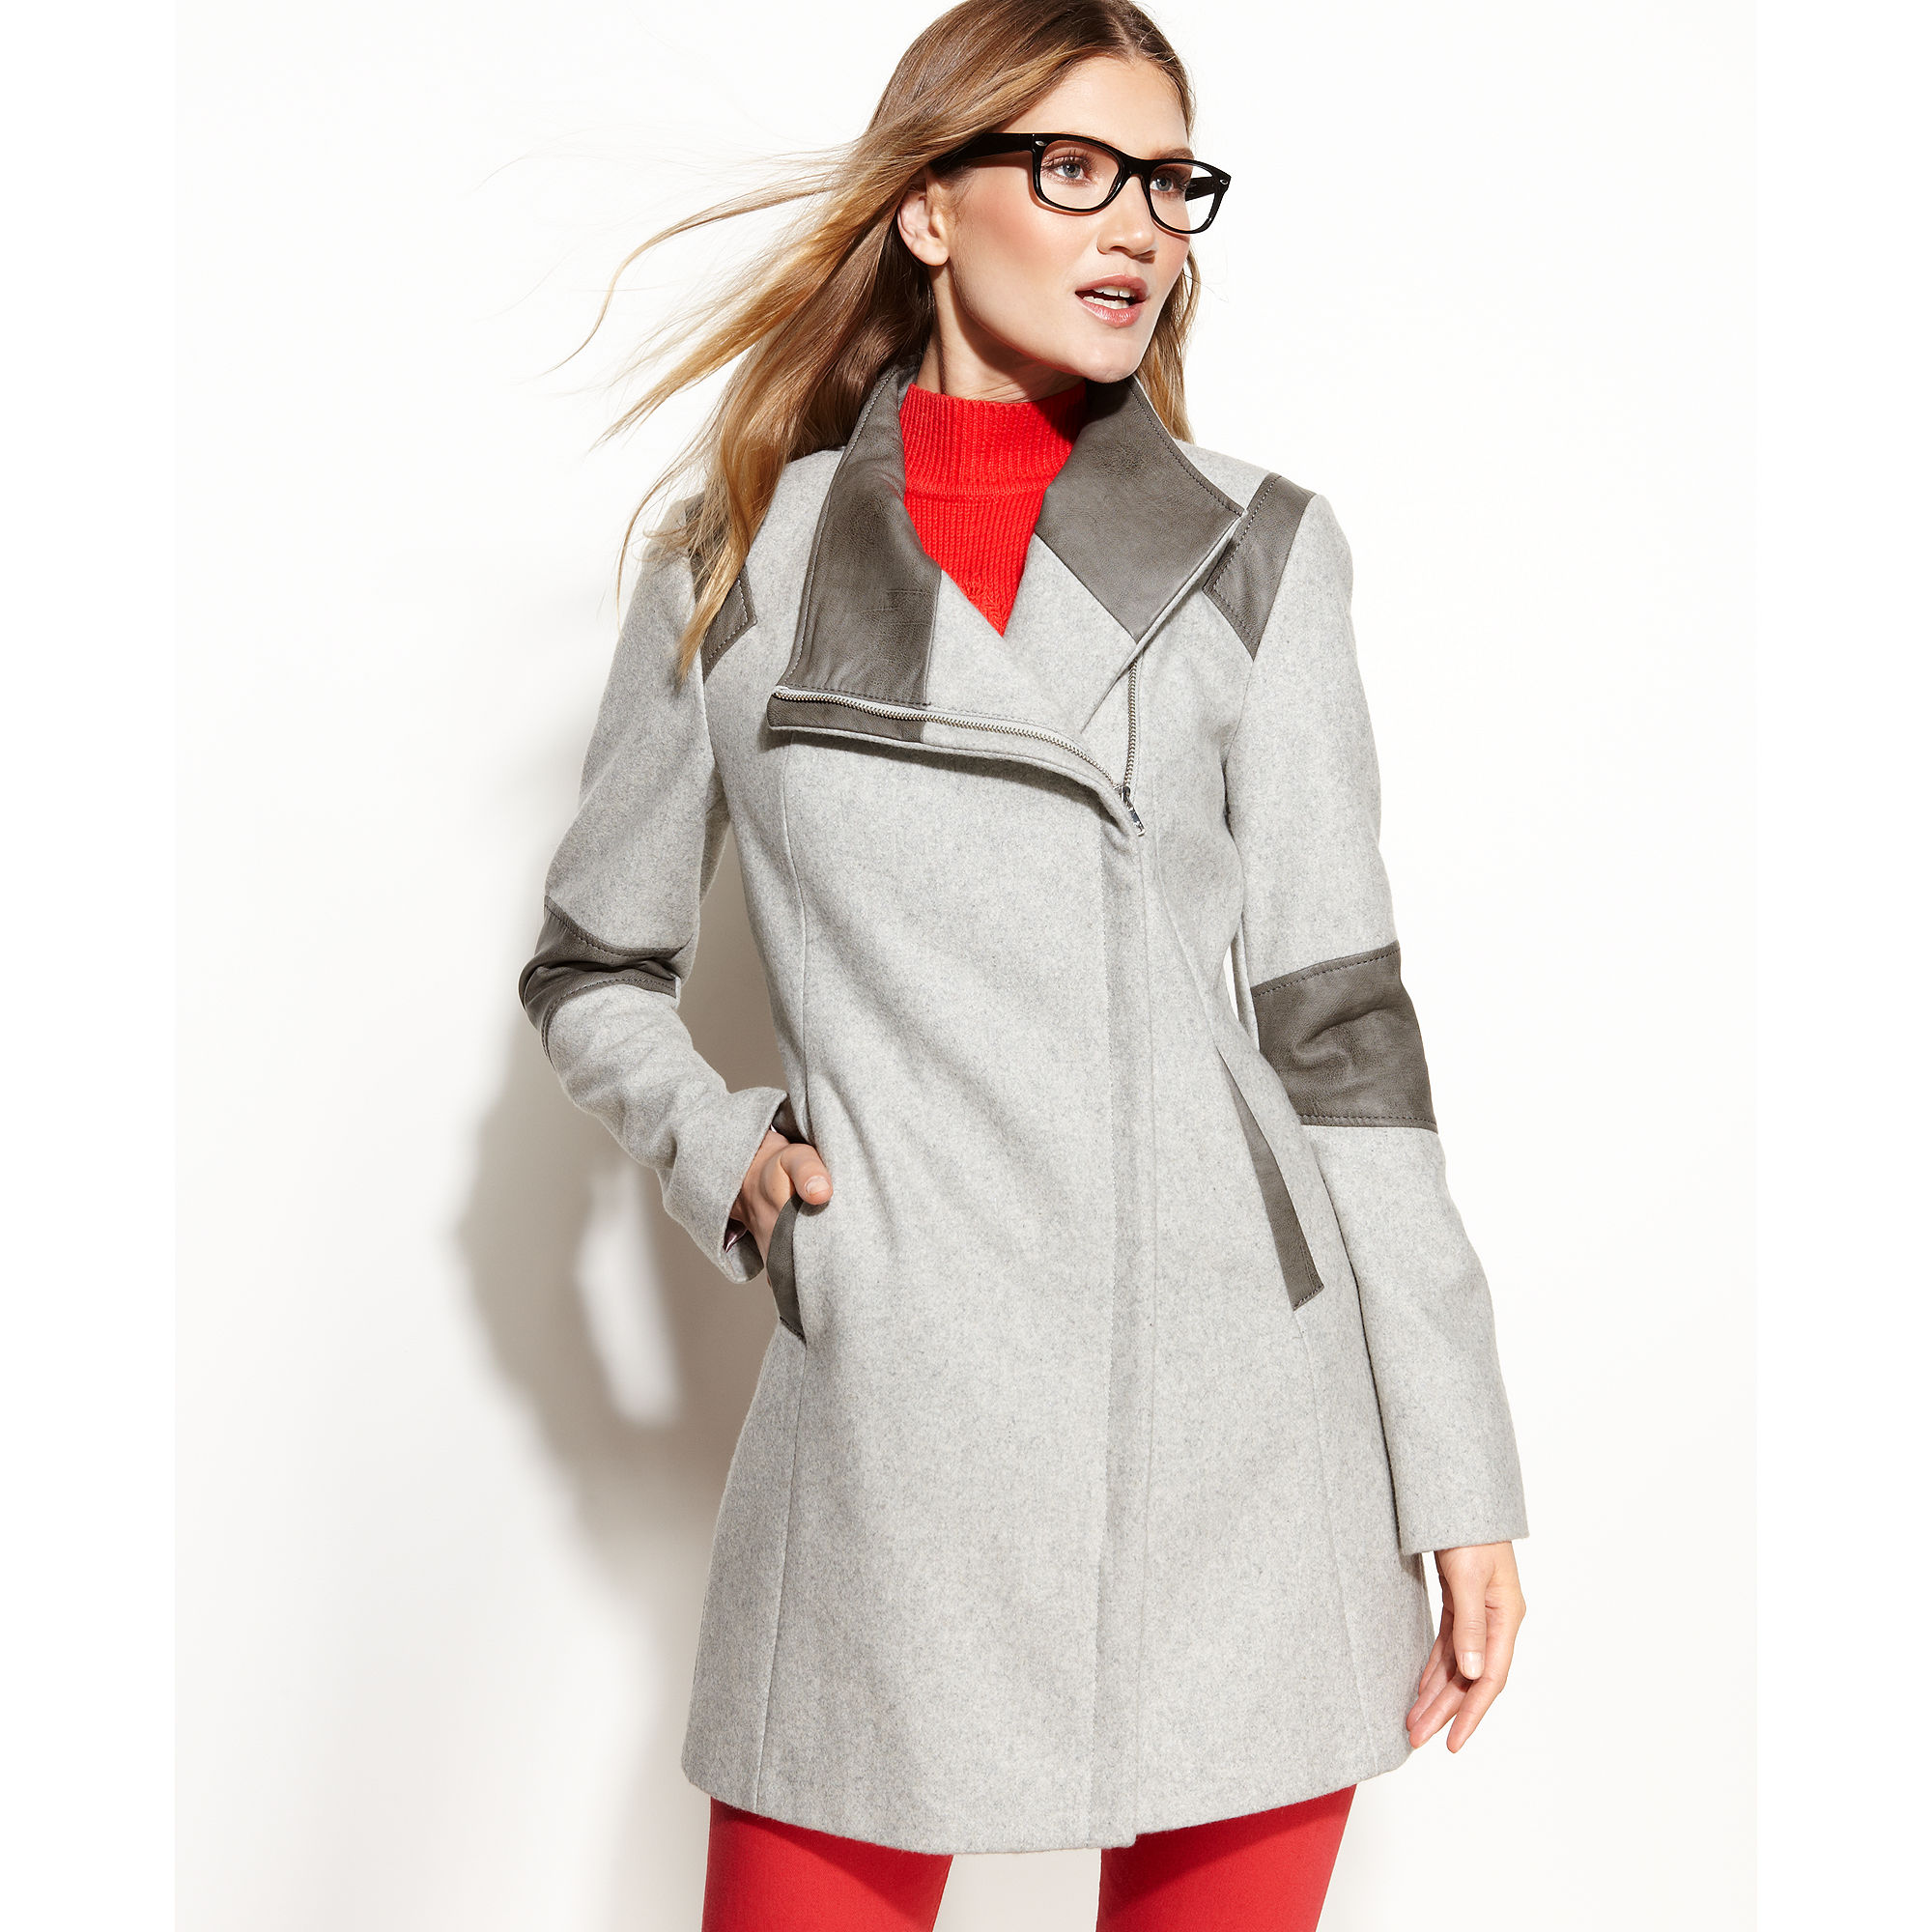 Calvin klein Colorblock Faux Leather Trim Coat in Gray | Lyst